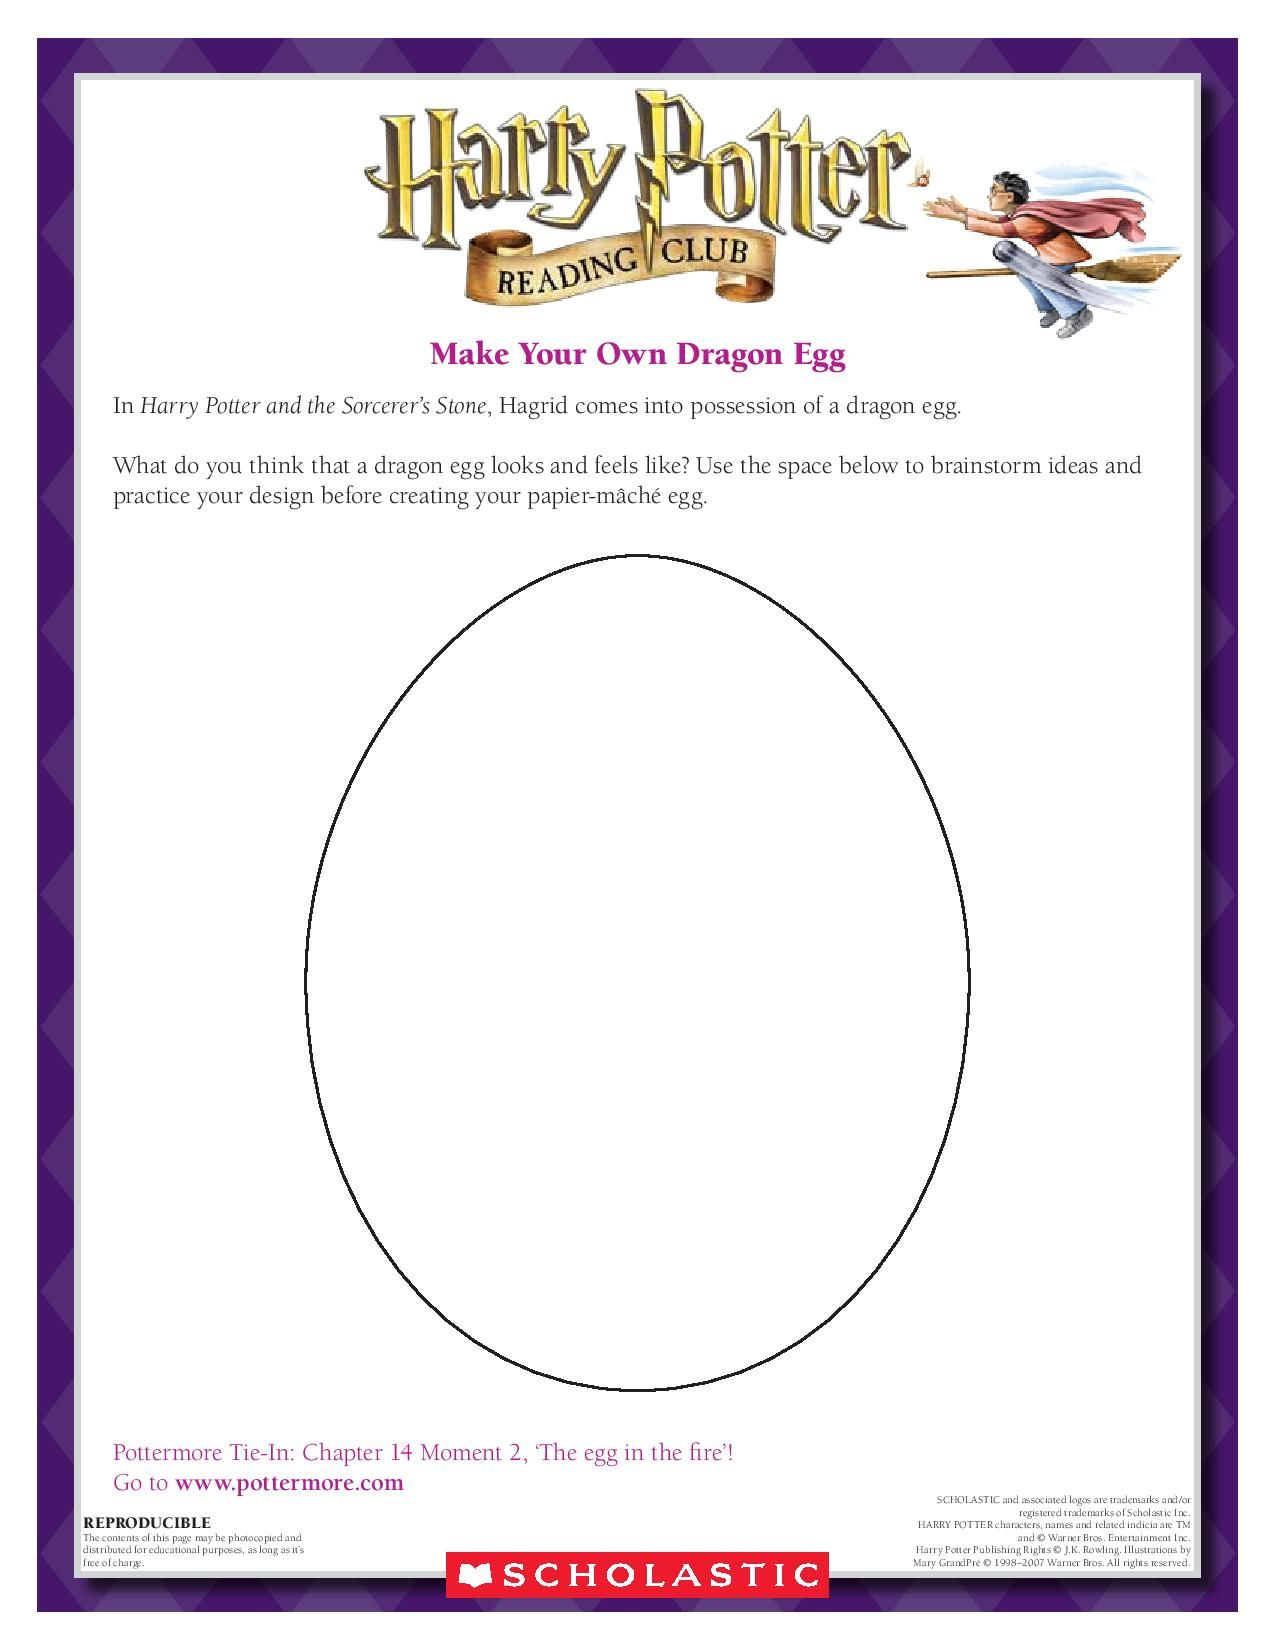 Craft Hatch Your Own Dragon Egg Download By Clicking The